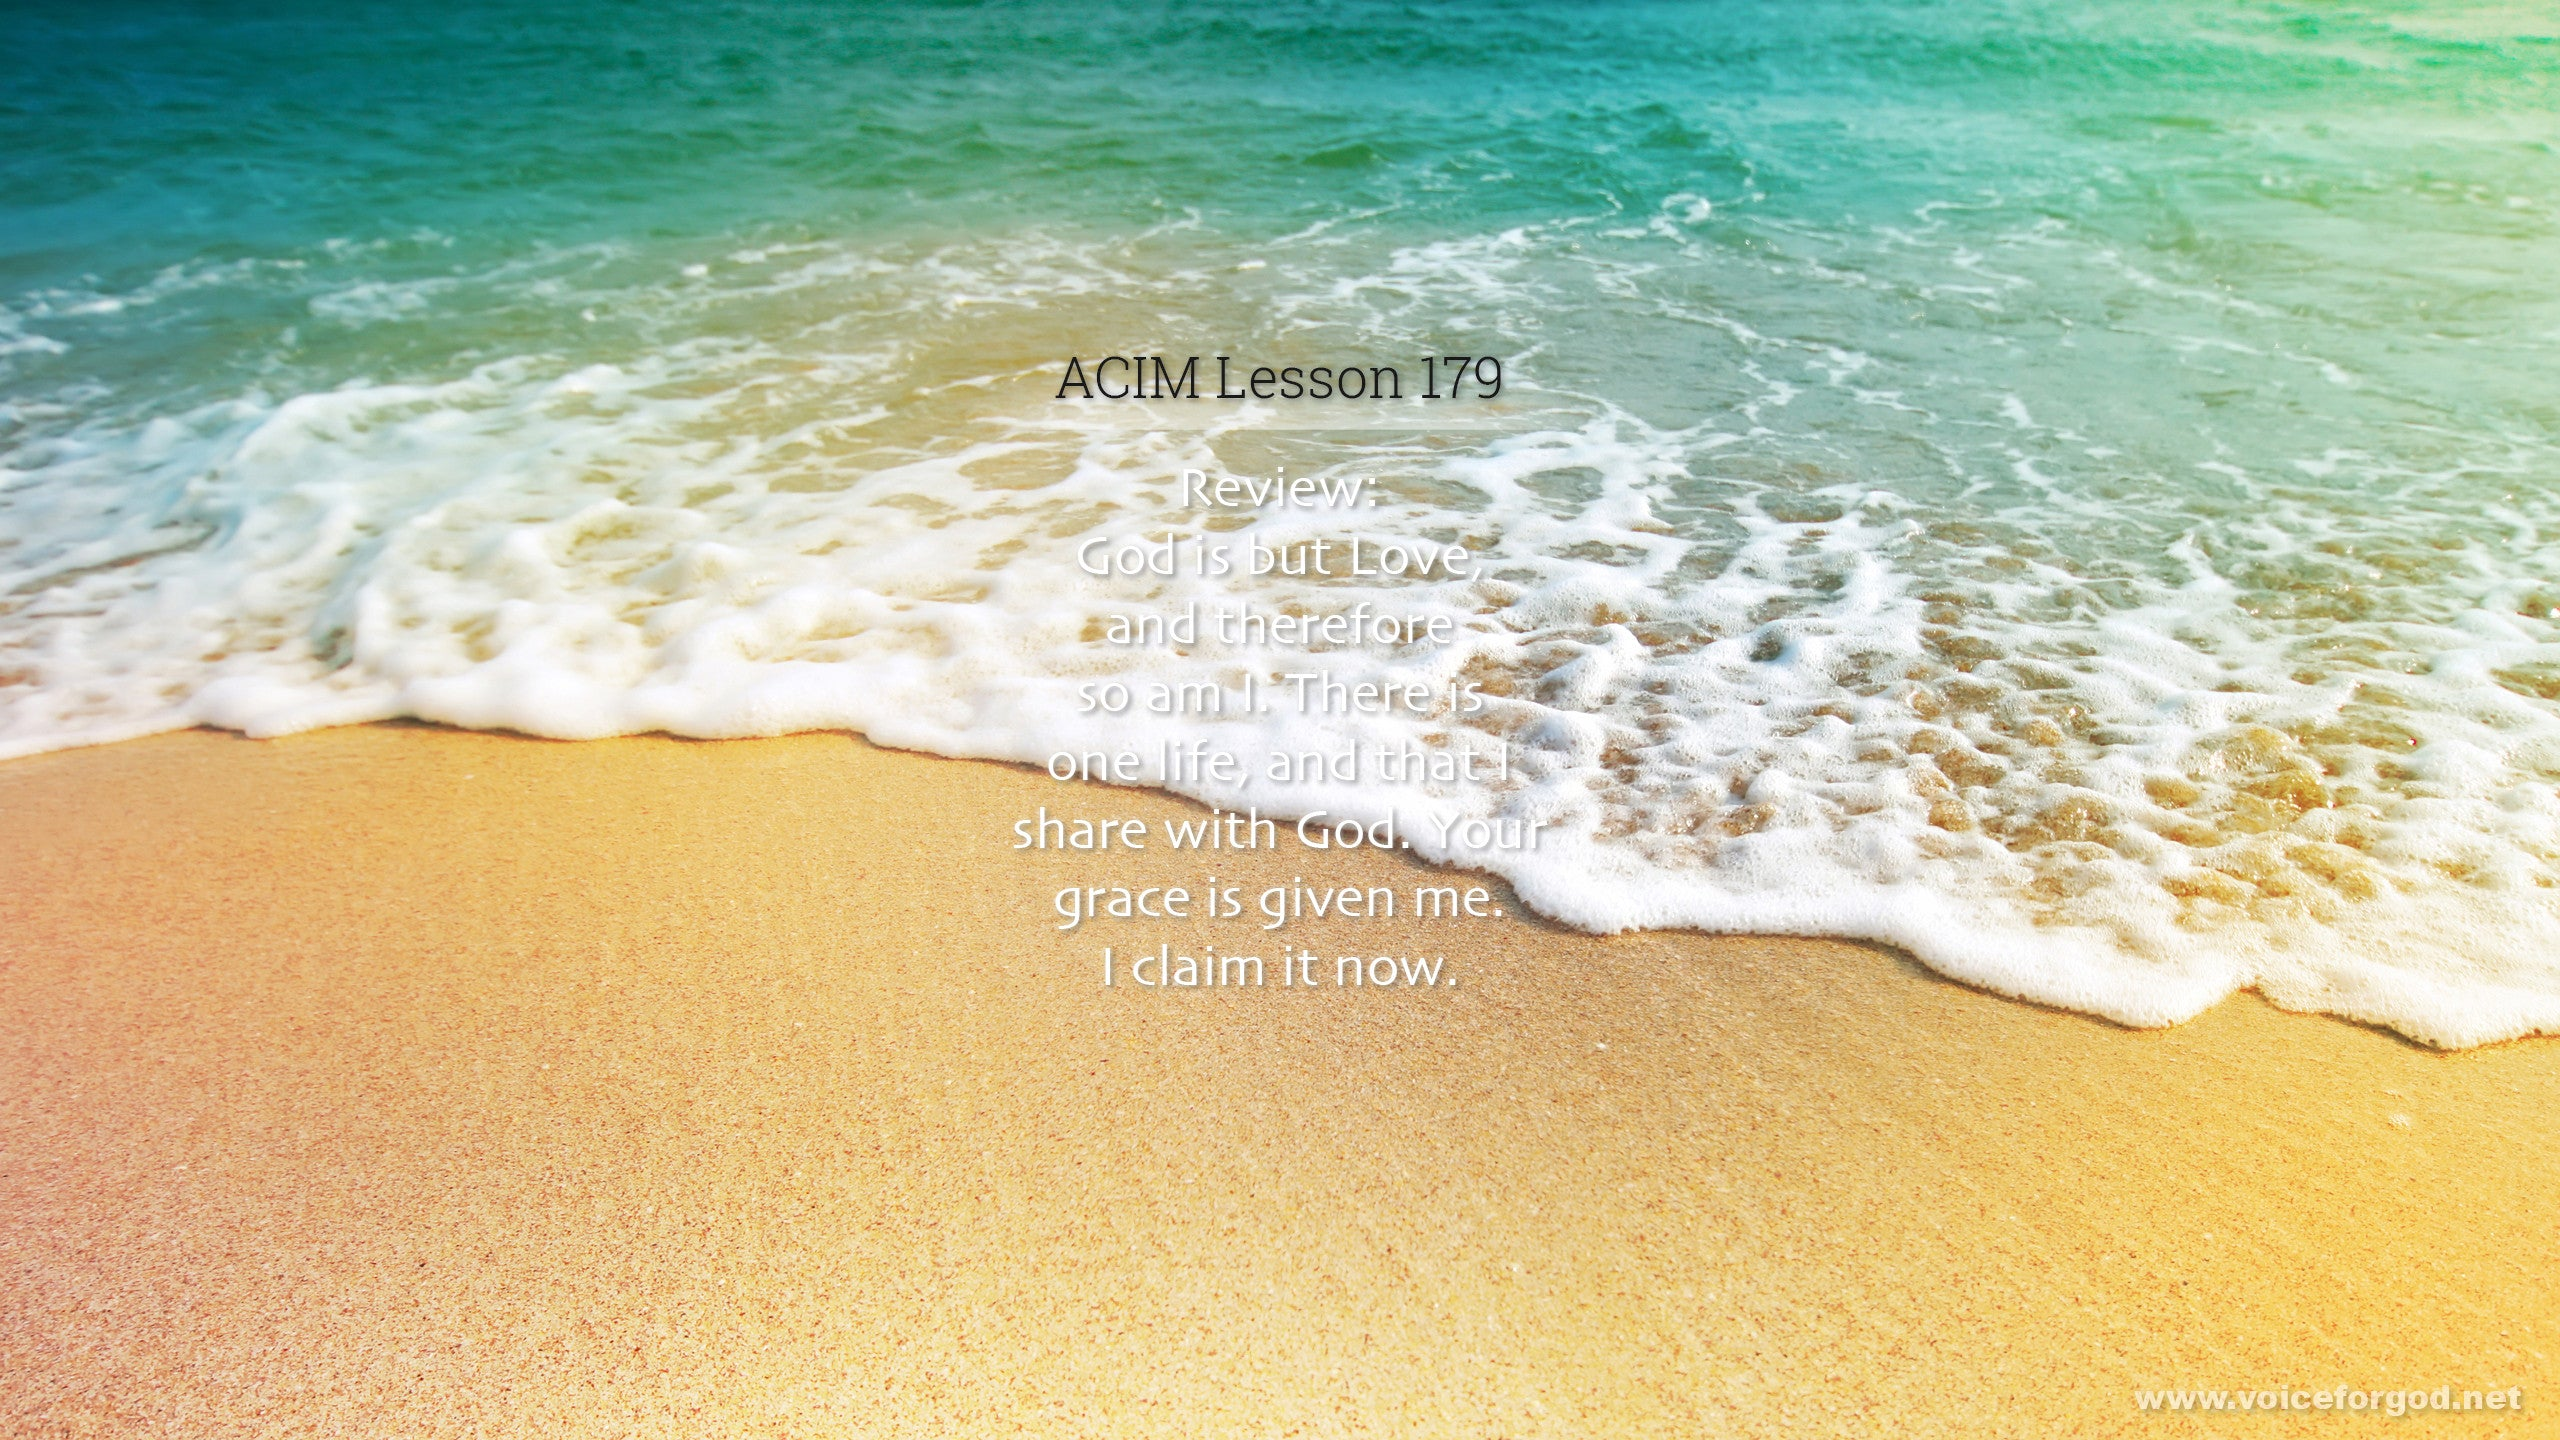 ACIM Lesson 179 - A Course in Miracles Workbook Lesson 179